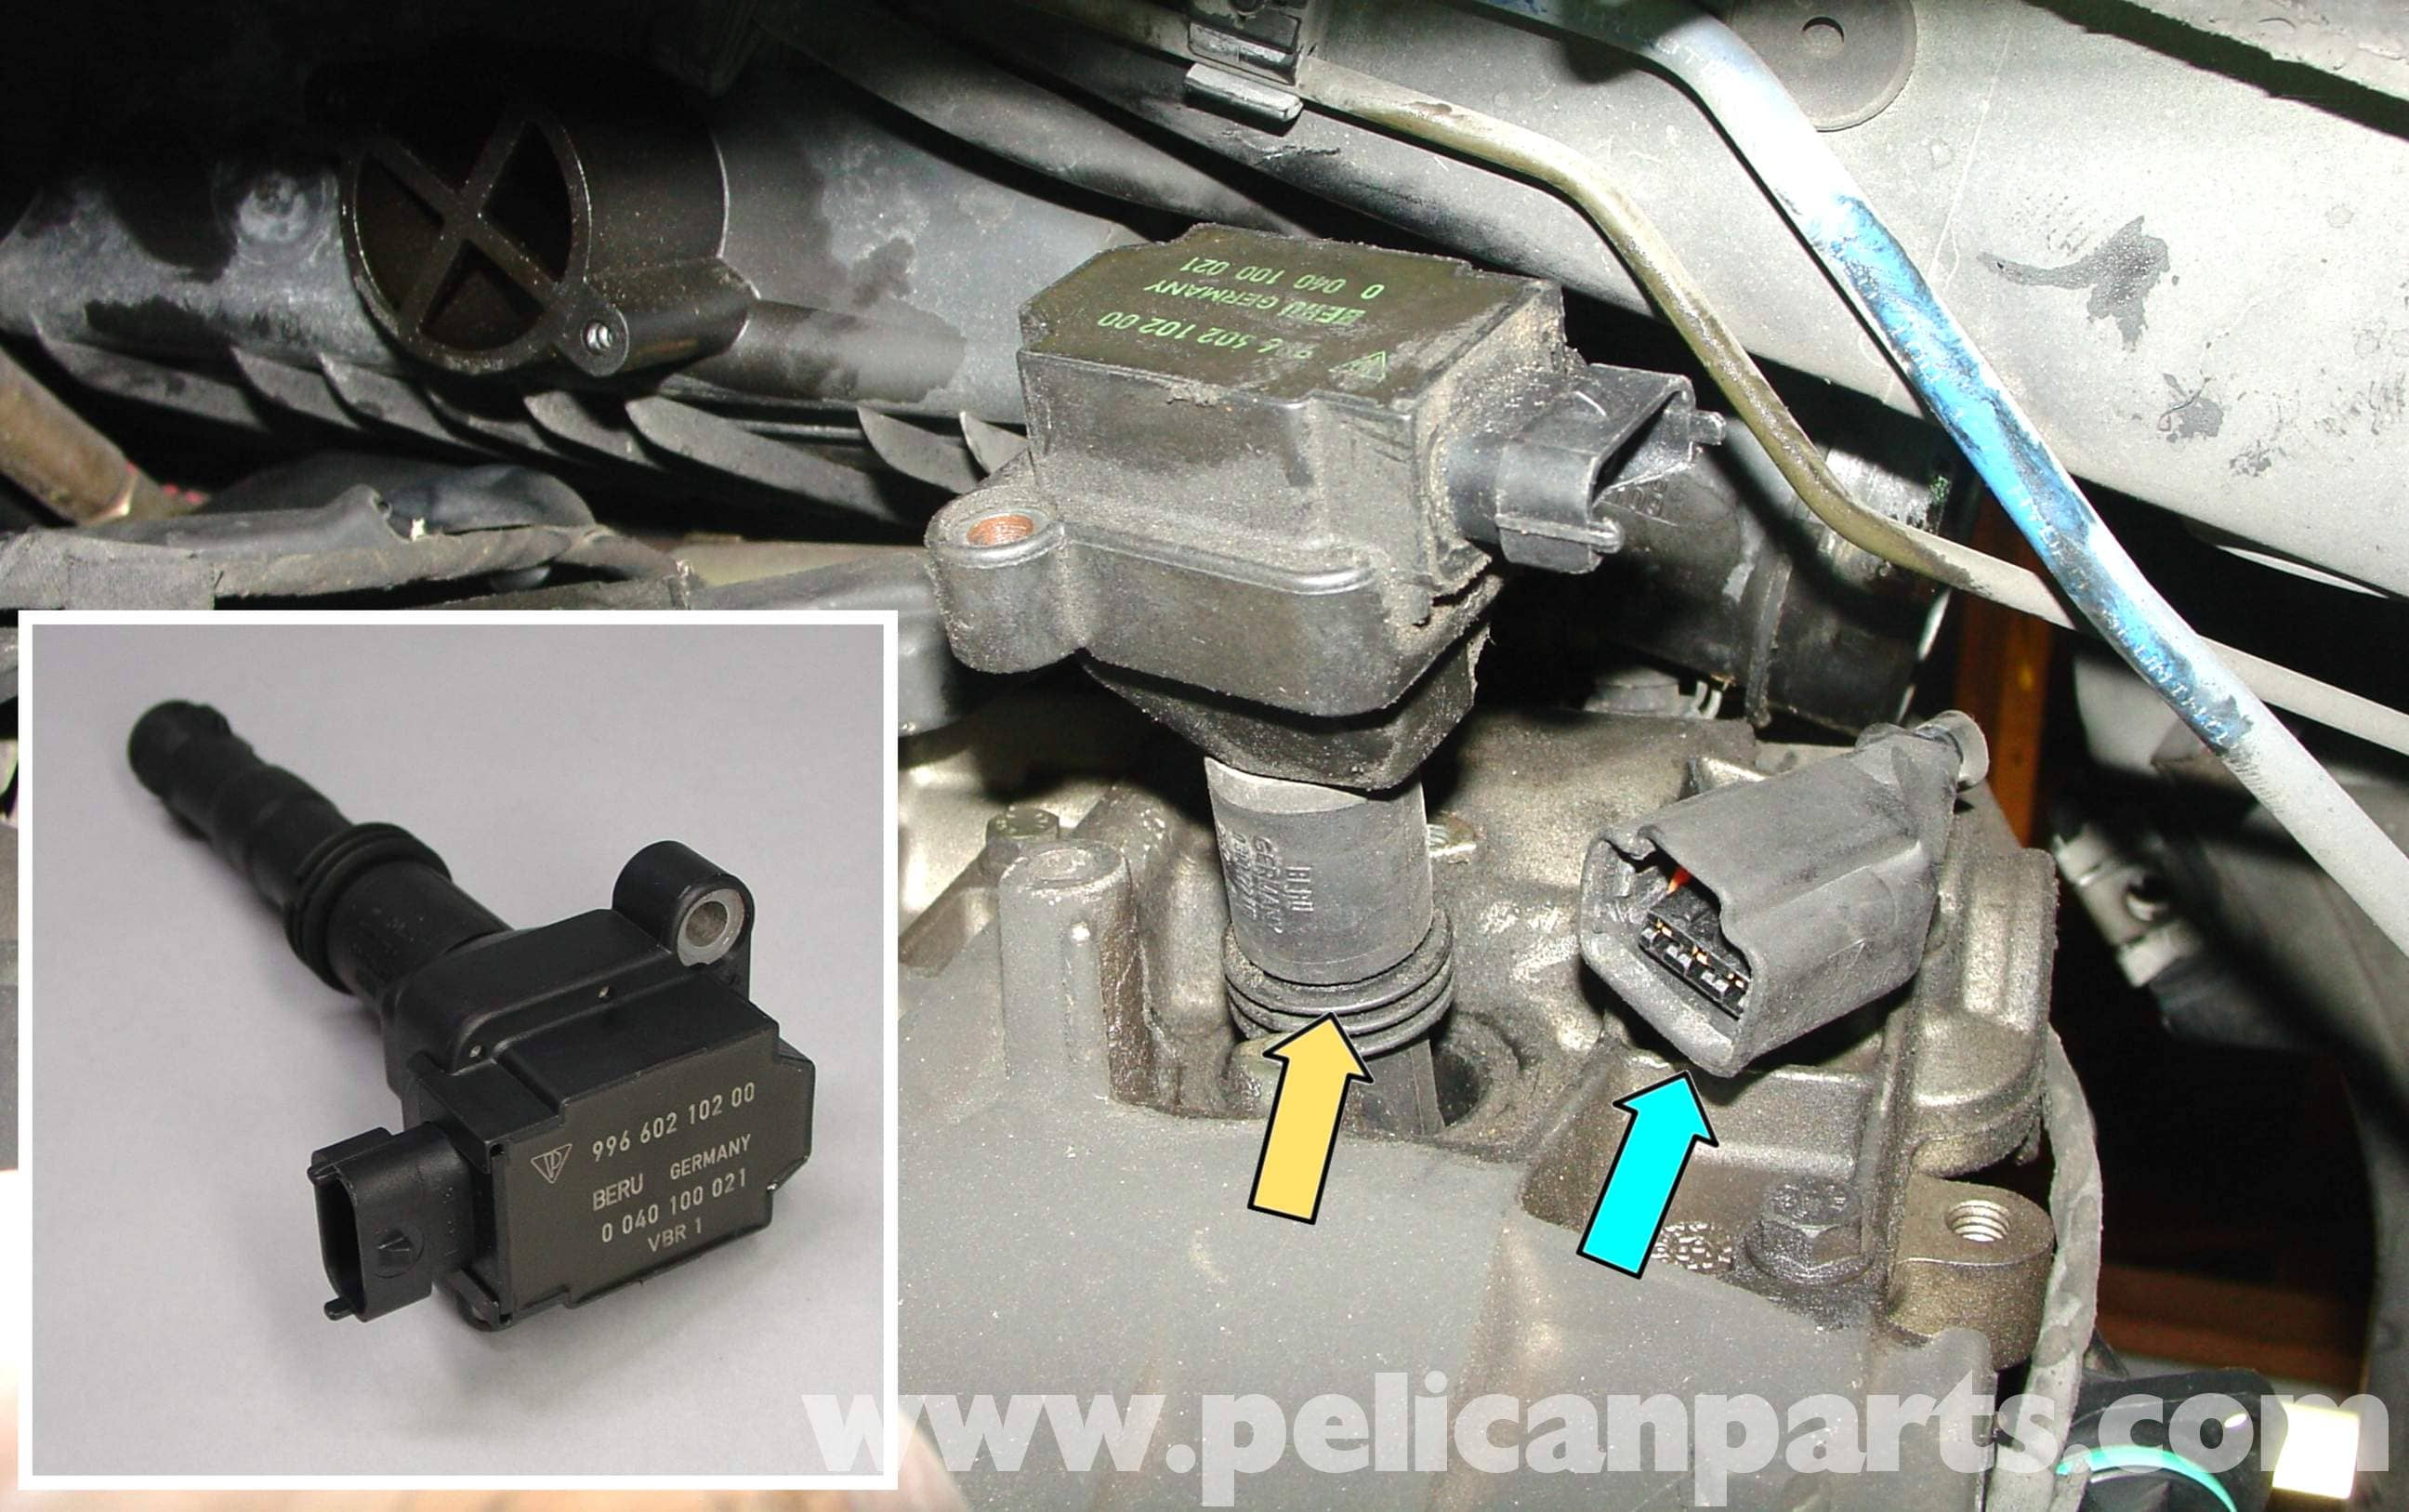 Porsche 911 Carrera Spark Plug Replacement - 996 (1998-2005) - 997 on lights and wires, battery and wires, bolts and wires, ford focus plug wires, spark plug wire parts, batteries and wires, horns and wires, spark plug wire checker, spark plug wire set, spark plug wire tool, fan belts and wires, ignition coils and wires, spark plug wire lube, spark plug cables, spark plug wire resistance chart, spark plug wire by the foot,